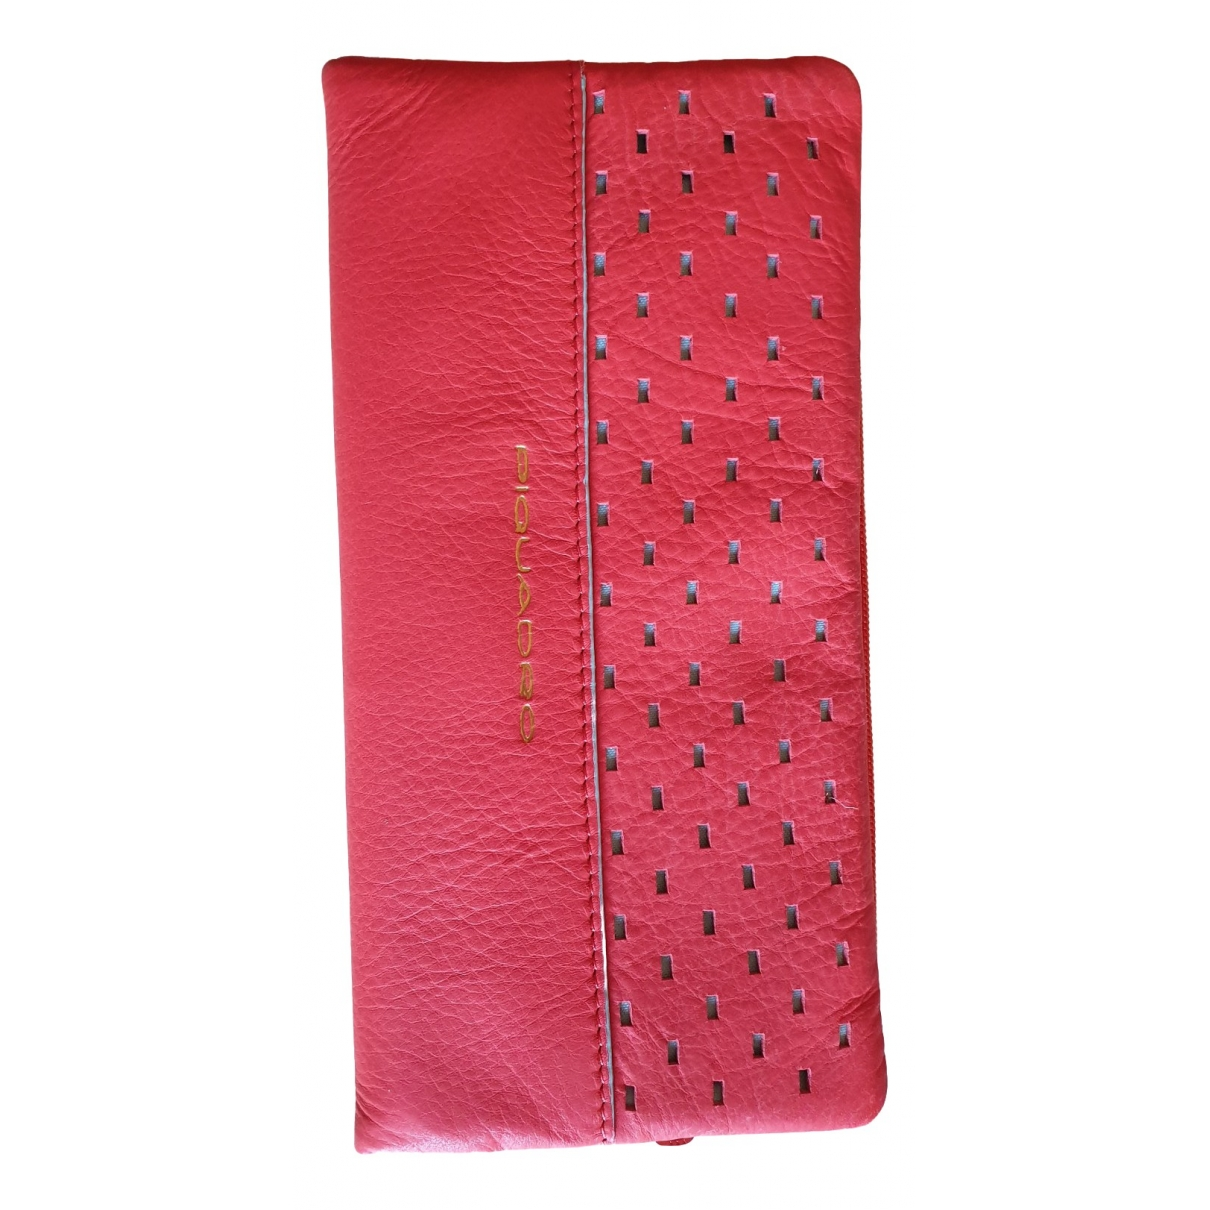 Piquadro \N Red Leather wallet for Women \N